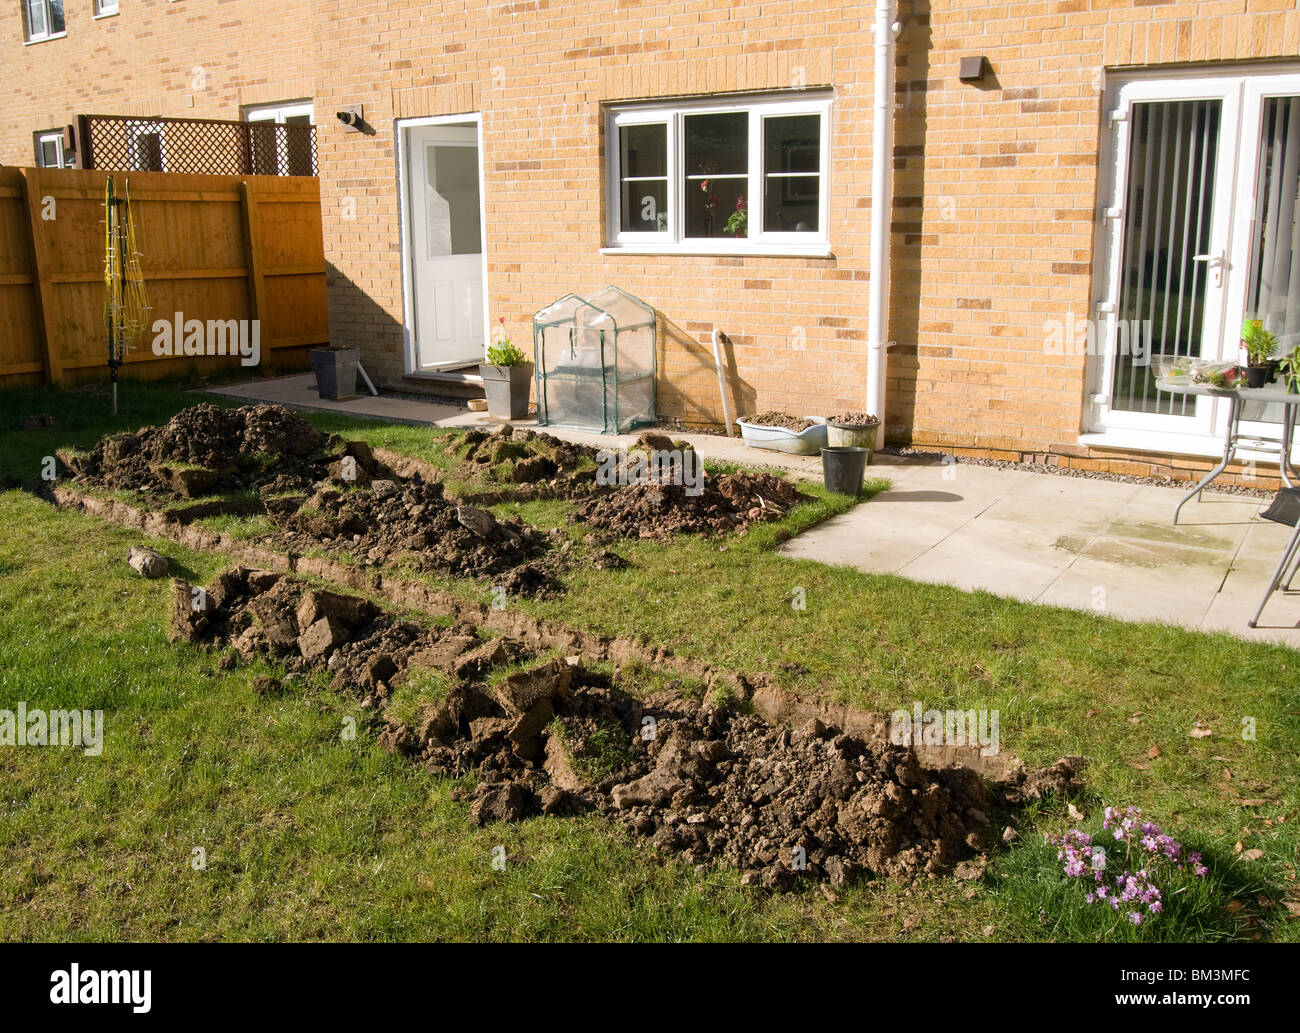 trenches dug into a garden of a new build house in preparation of